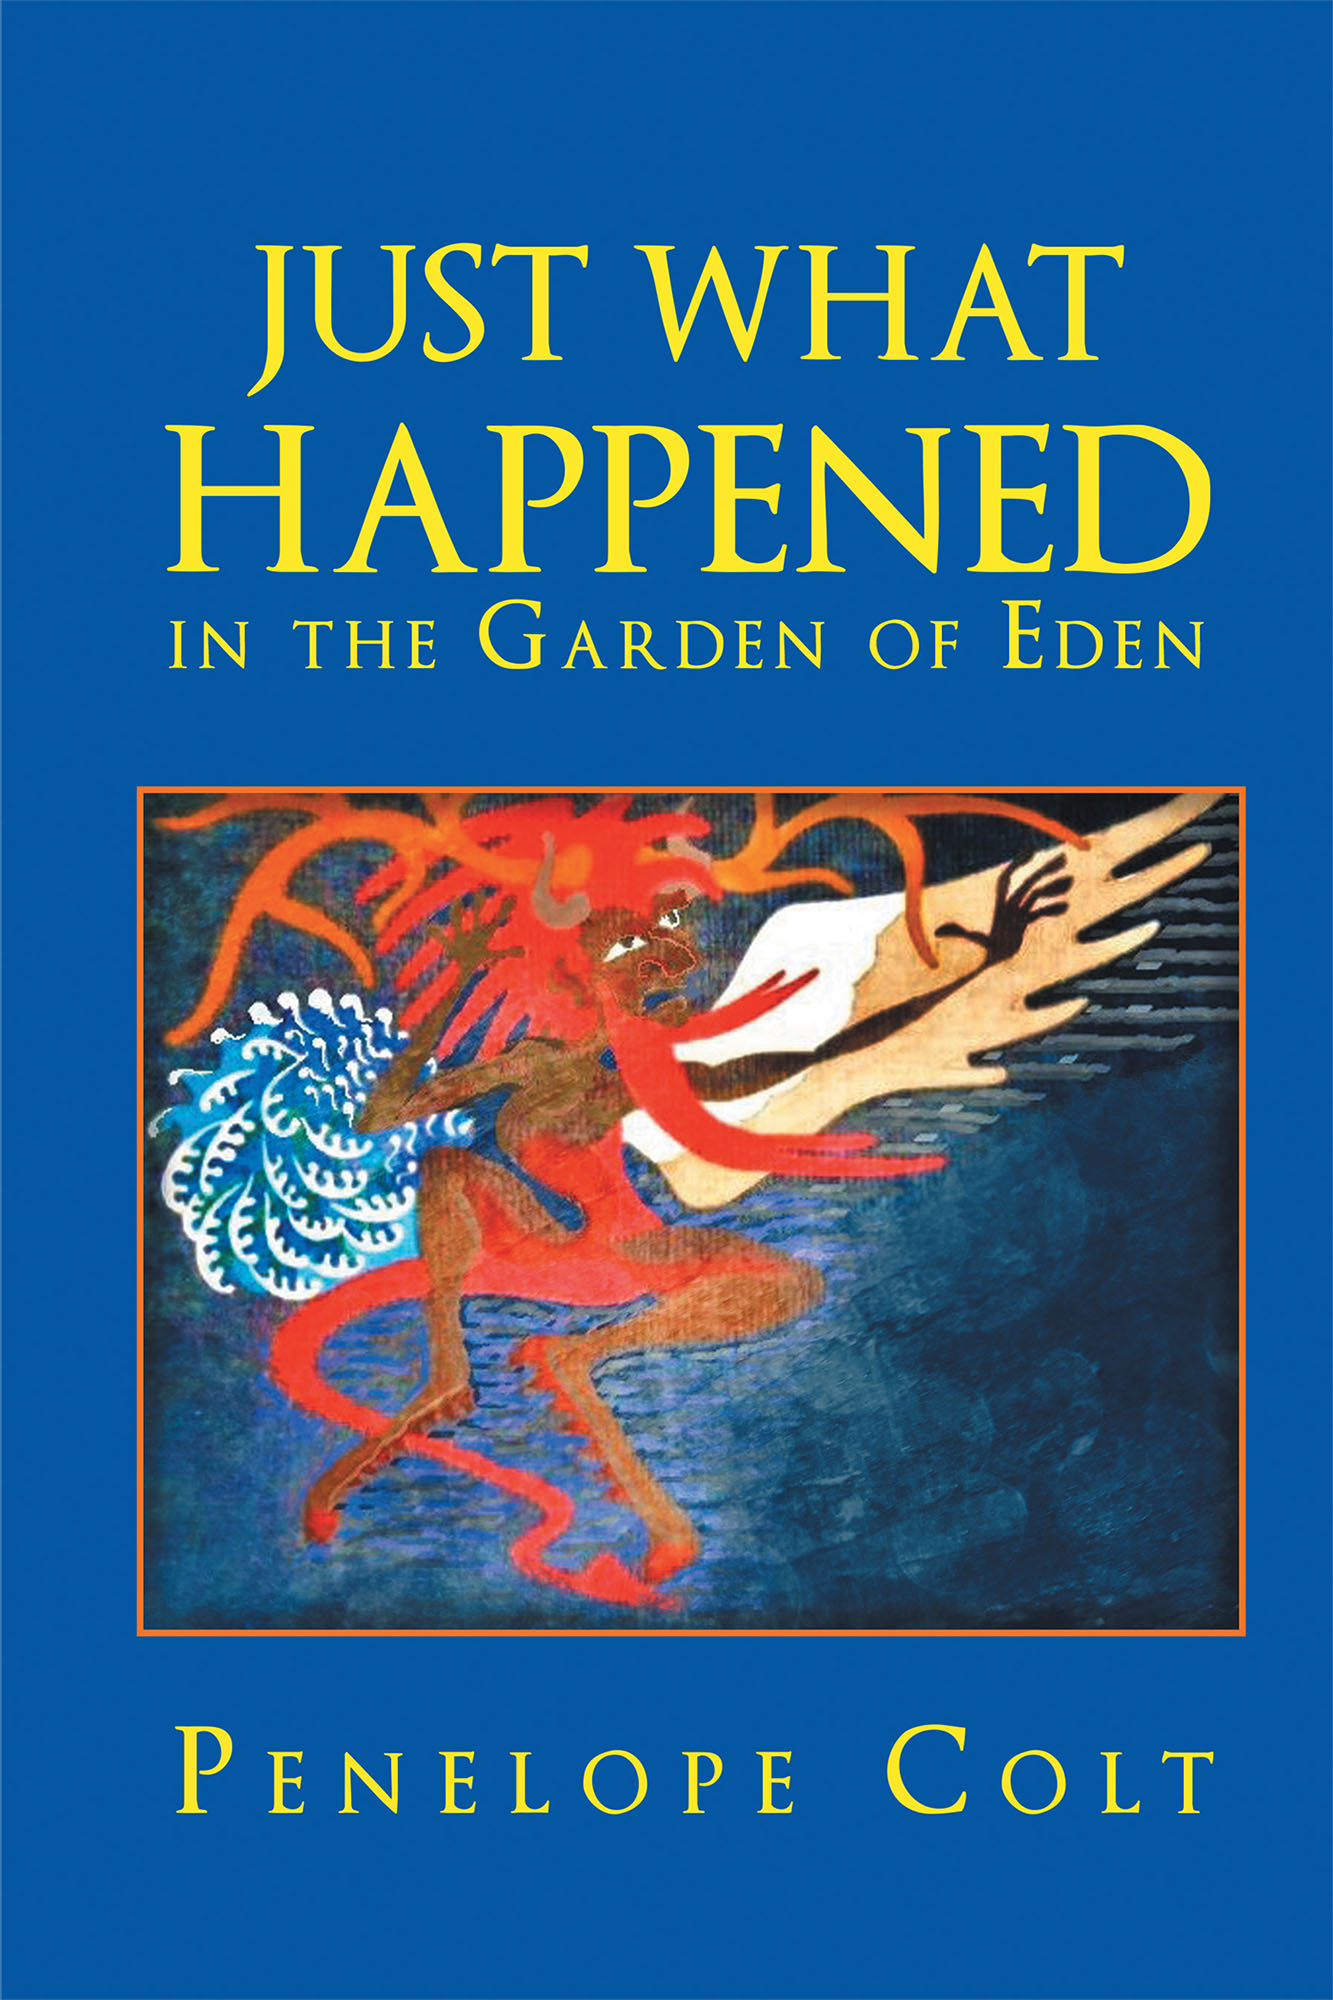 Author Penelope Colt S Illustrated The Newly Released Just What Happened In The Garden Of Eden